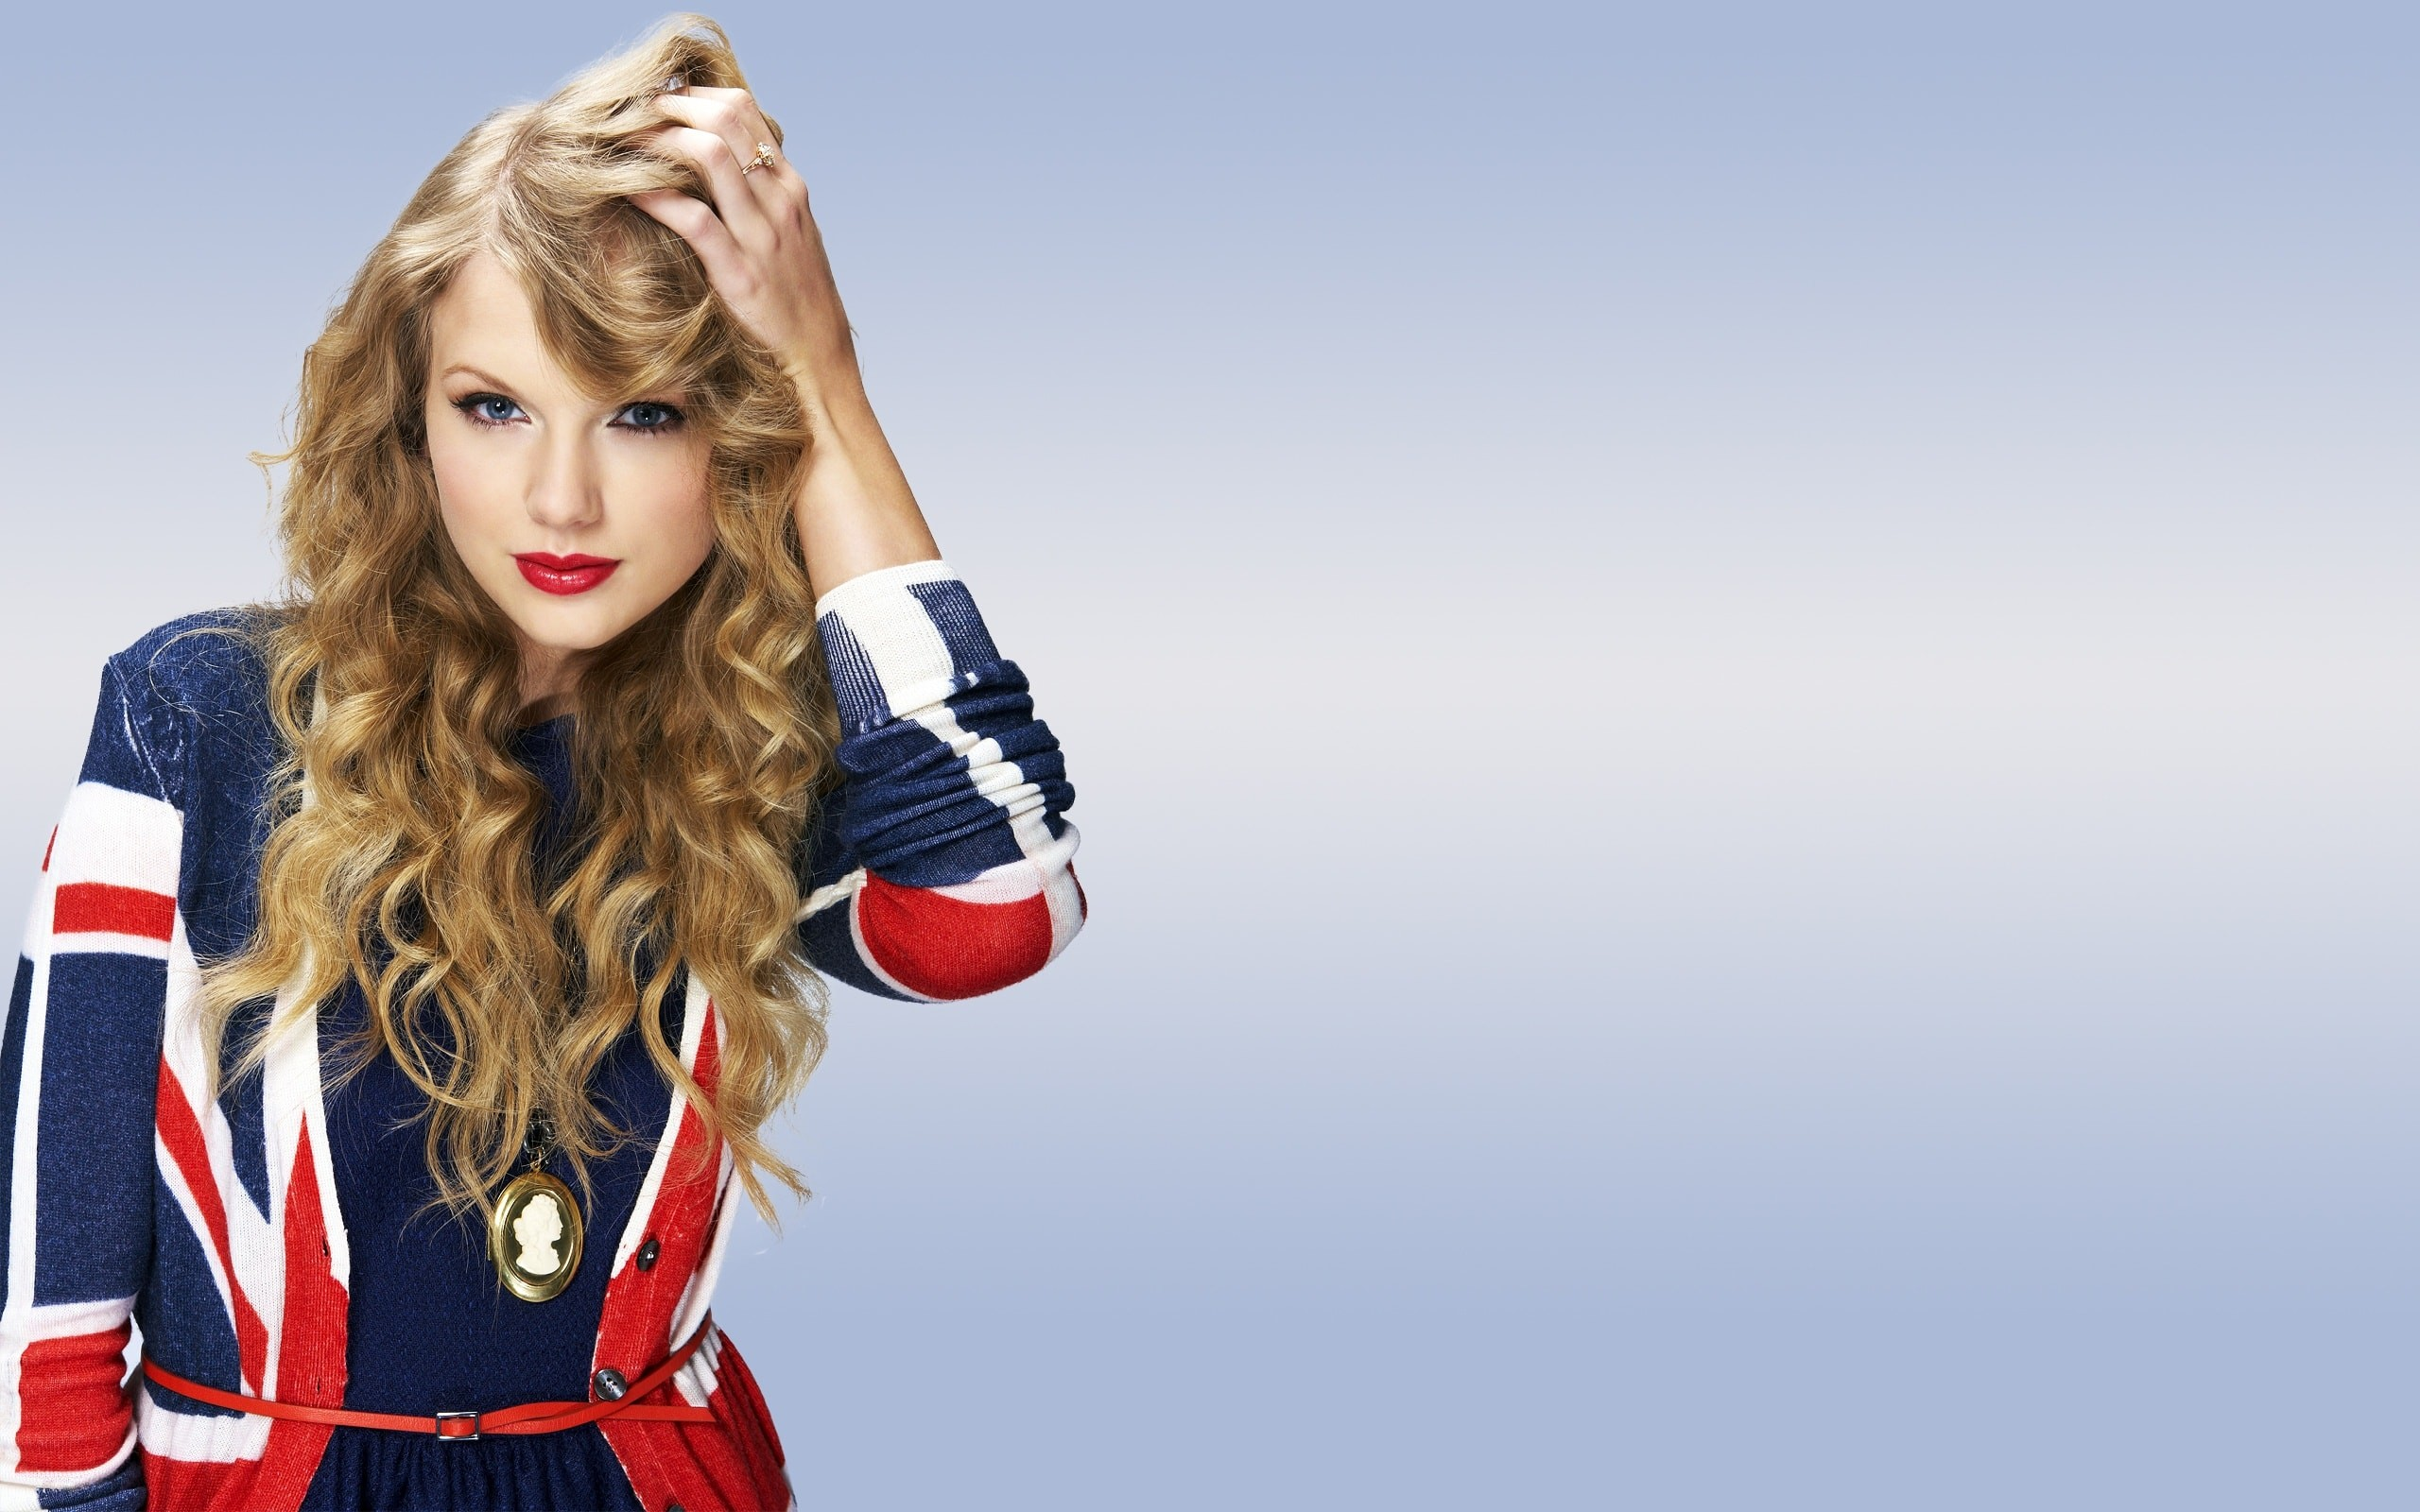 Taylor swift hd 2018 wallpapers 70 images - Taylor swift wallpaper iphone ...